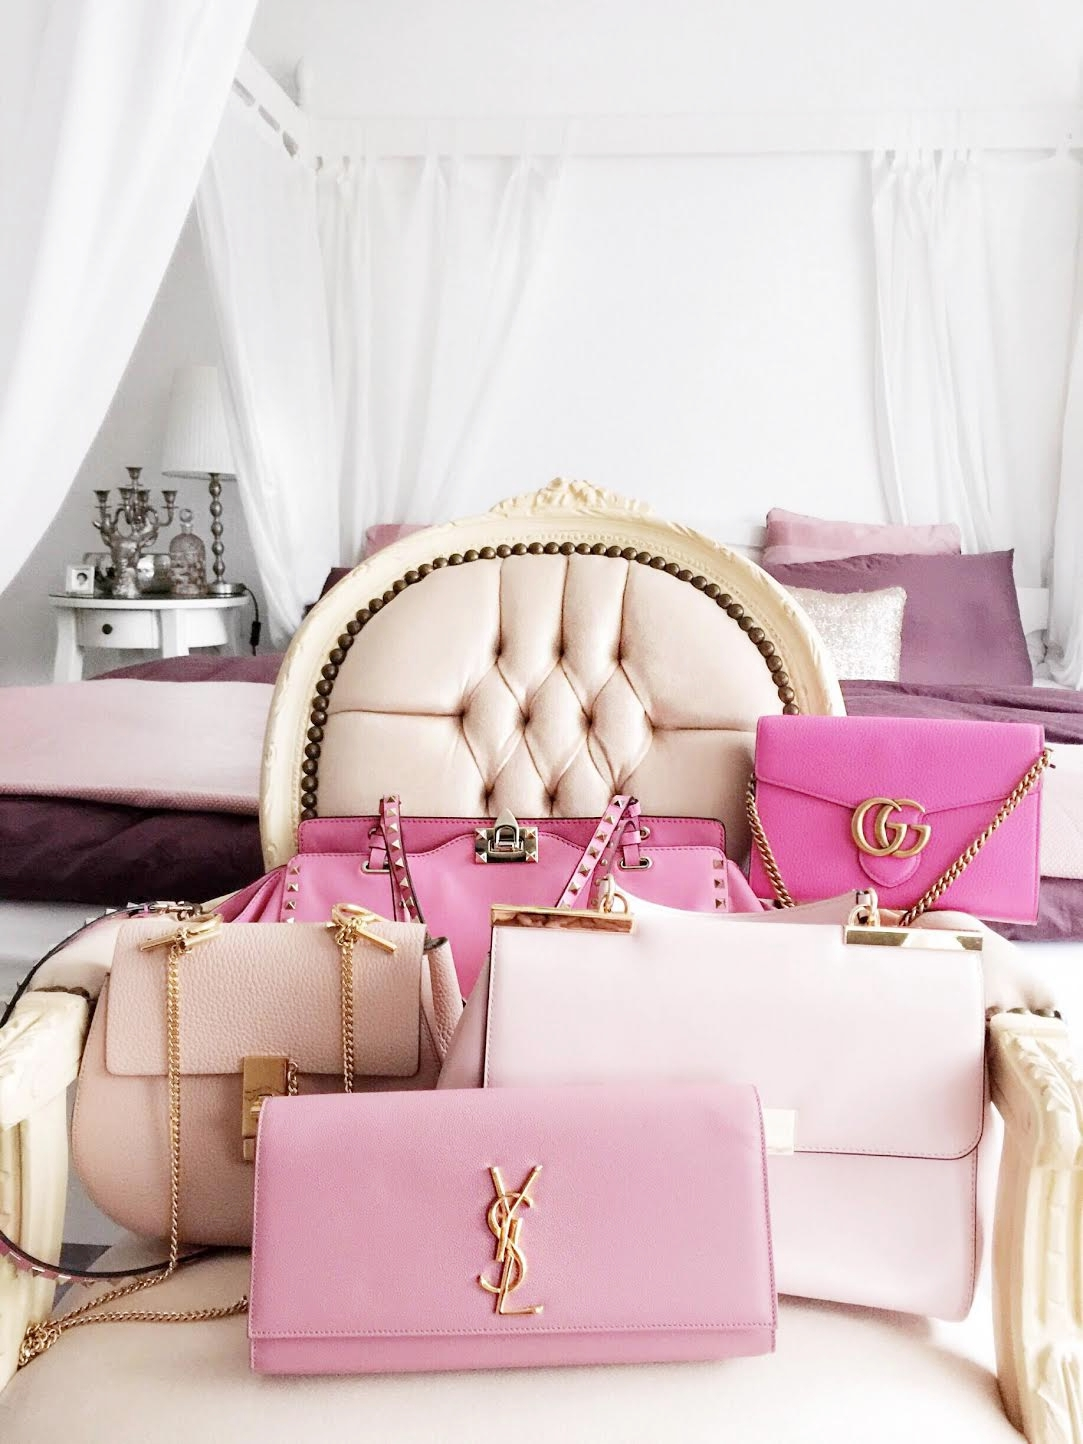 3dac726e1c73 5 classic pink handbags worth the investment - FashionHippieLoves